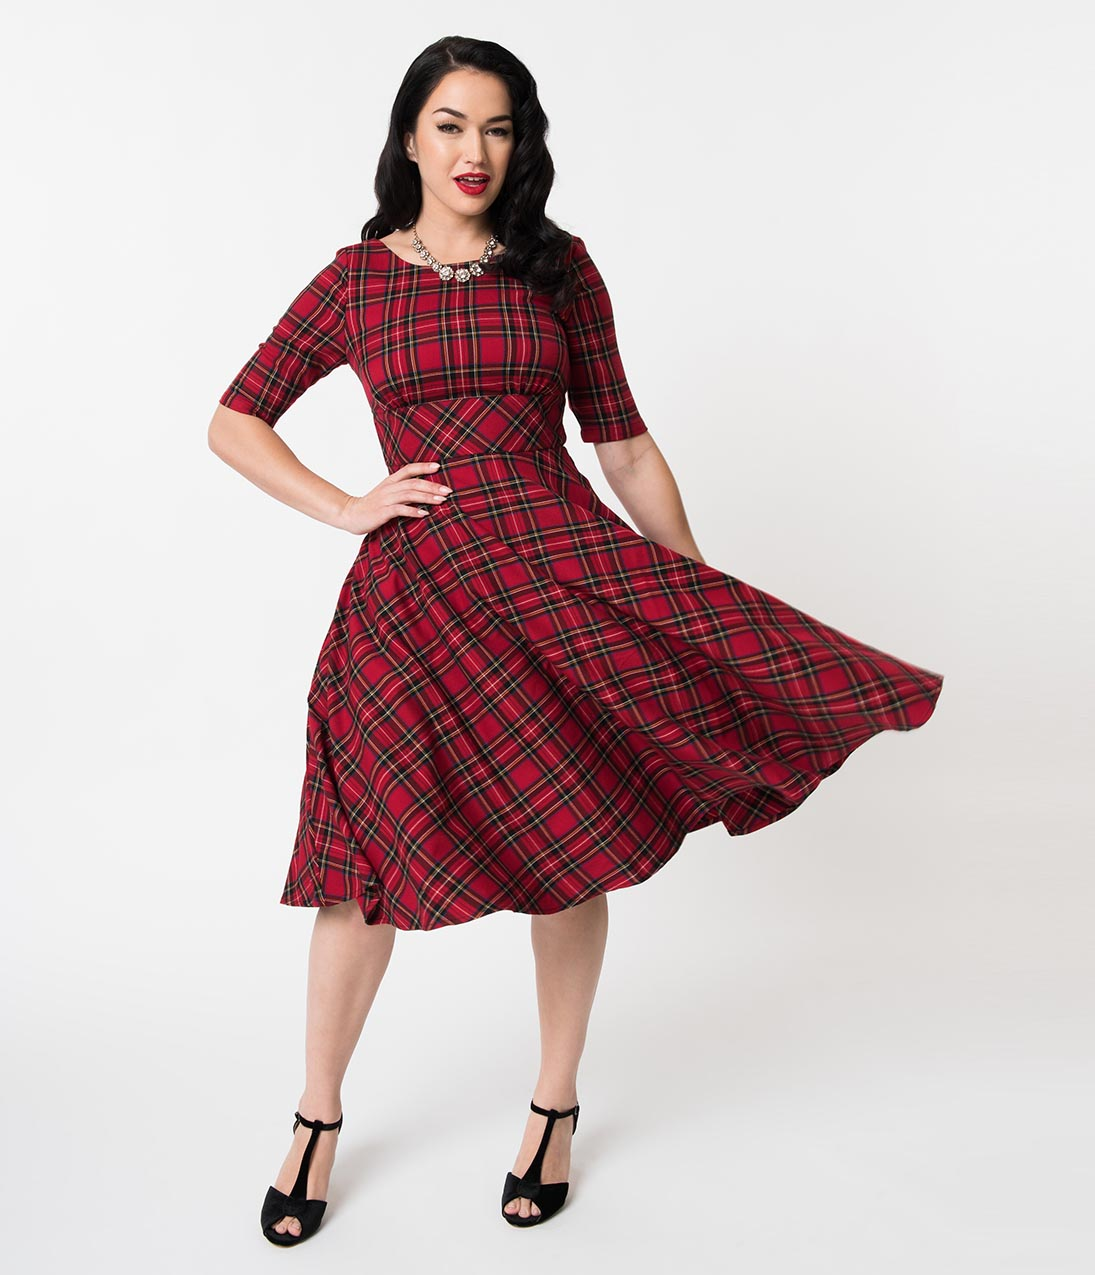 1950s Dresses, 50s Dresses | 1950s Style Dresses Hell Bunny 1950S Red Plaid Irvine Swing Holiday Dress $82.00 AT vintagedancer.com